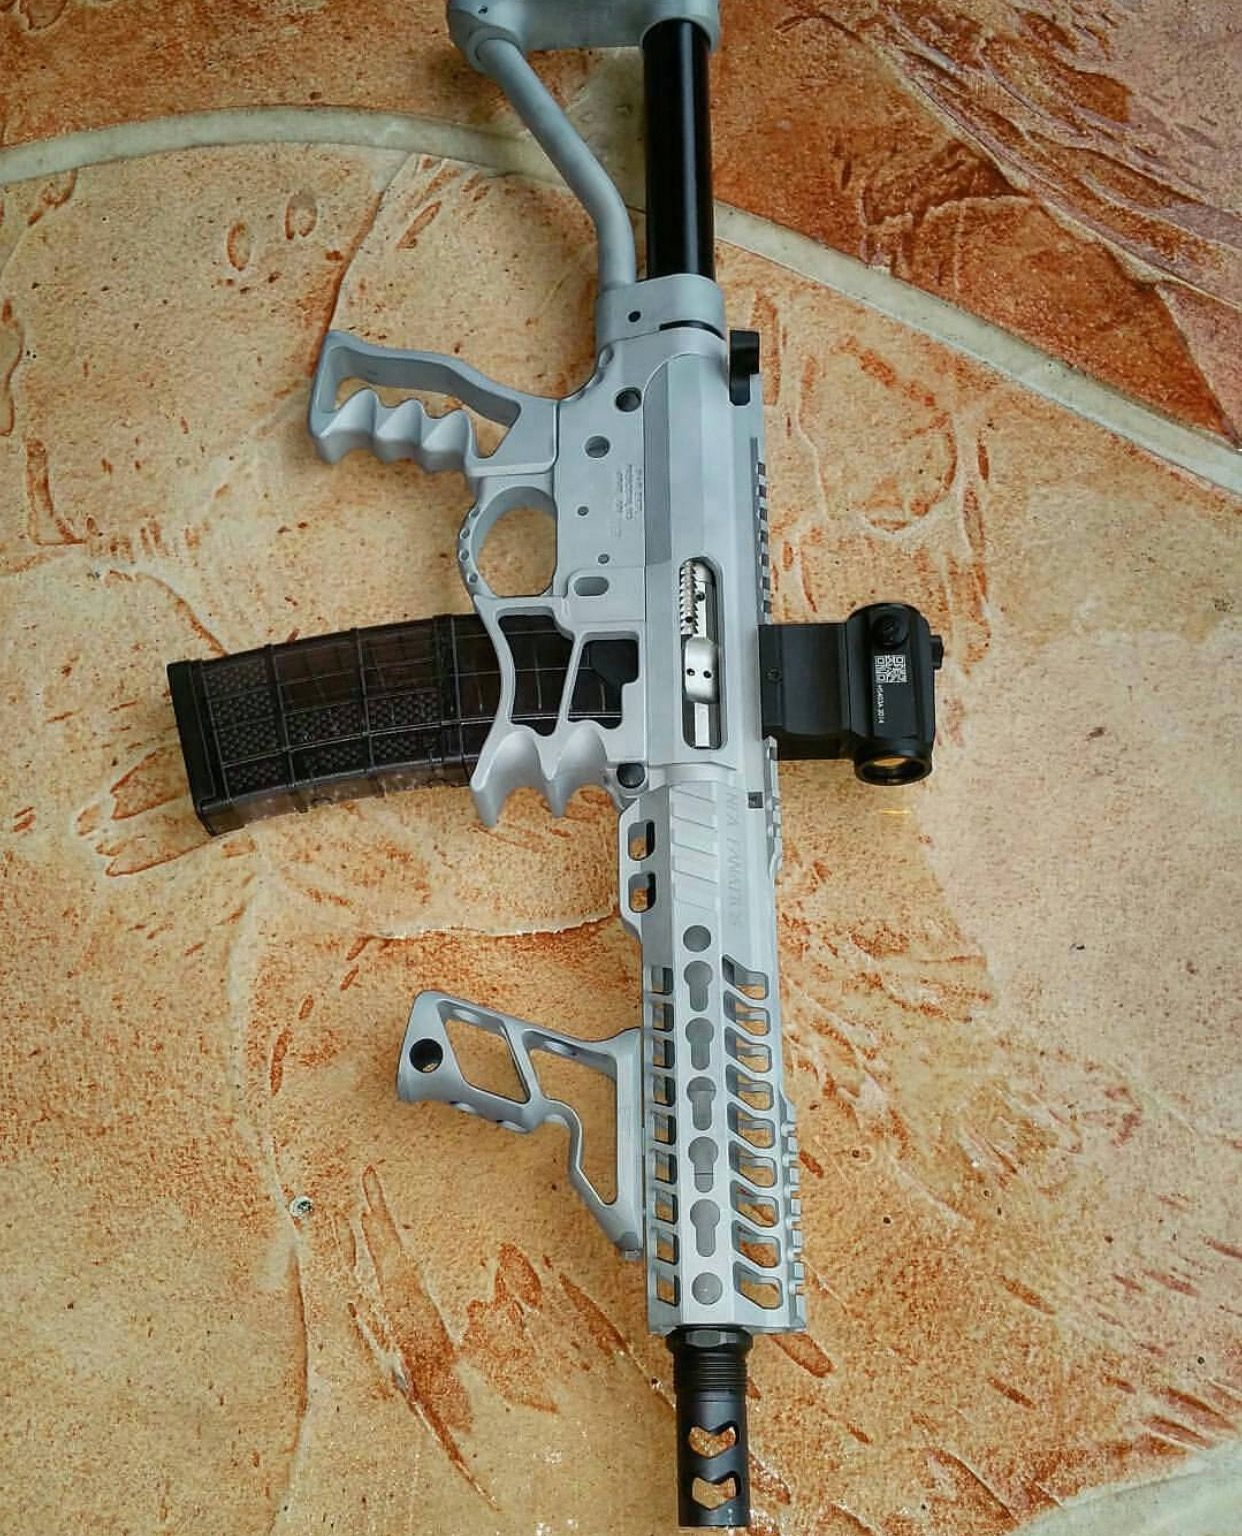 airsoft research paper Airsoft guns, universidad nacional de colombia (national university of colombia), faculty of economics sciences, faculty member studies economics, management, and.